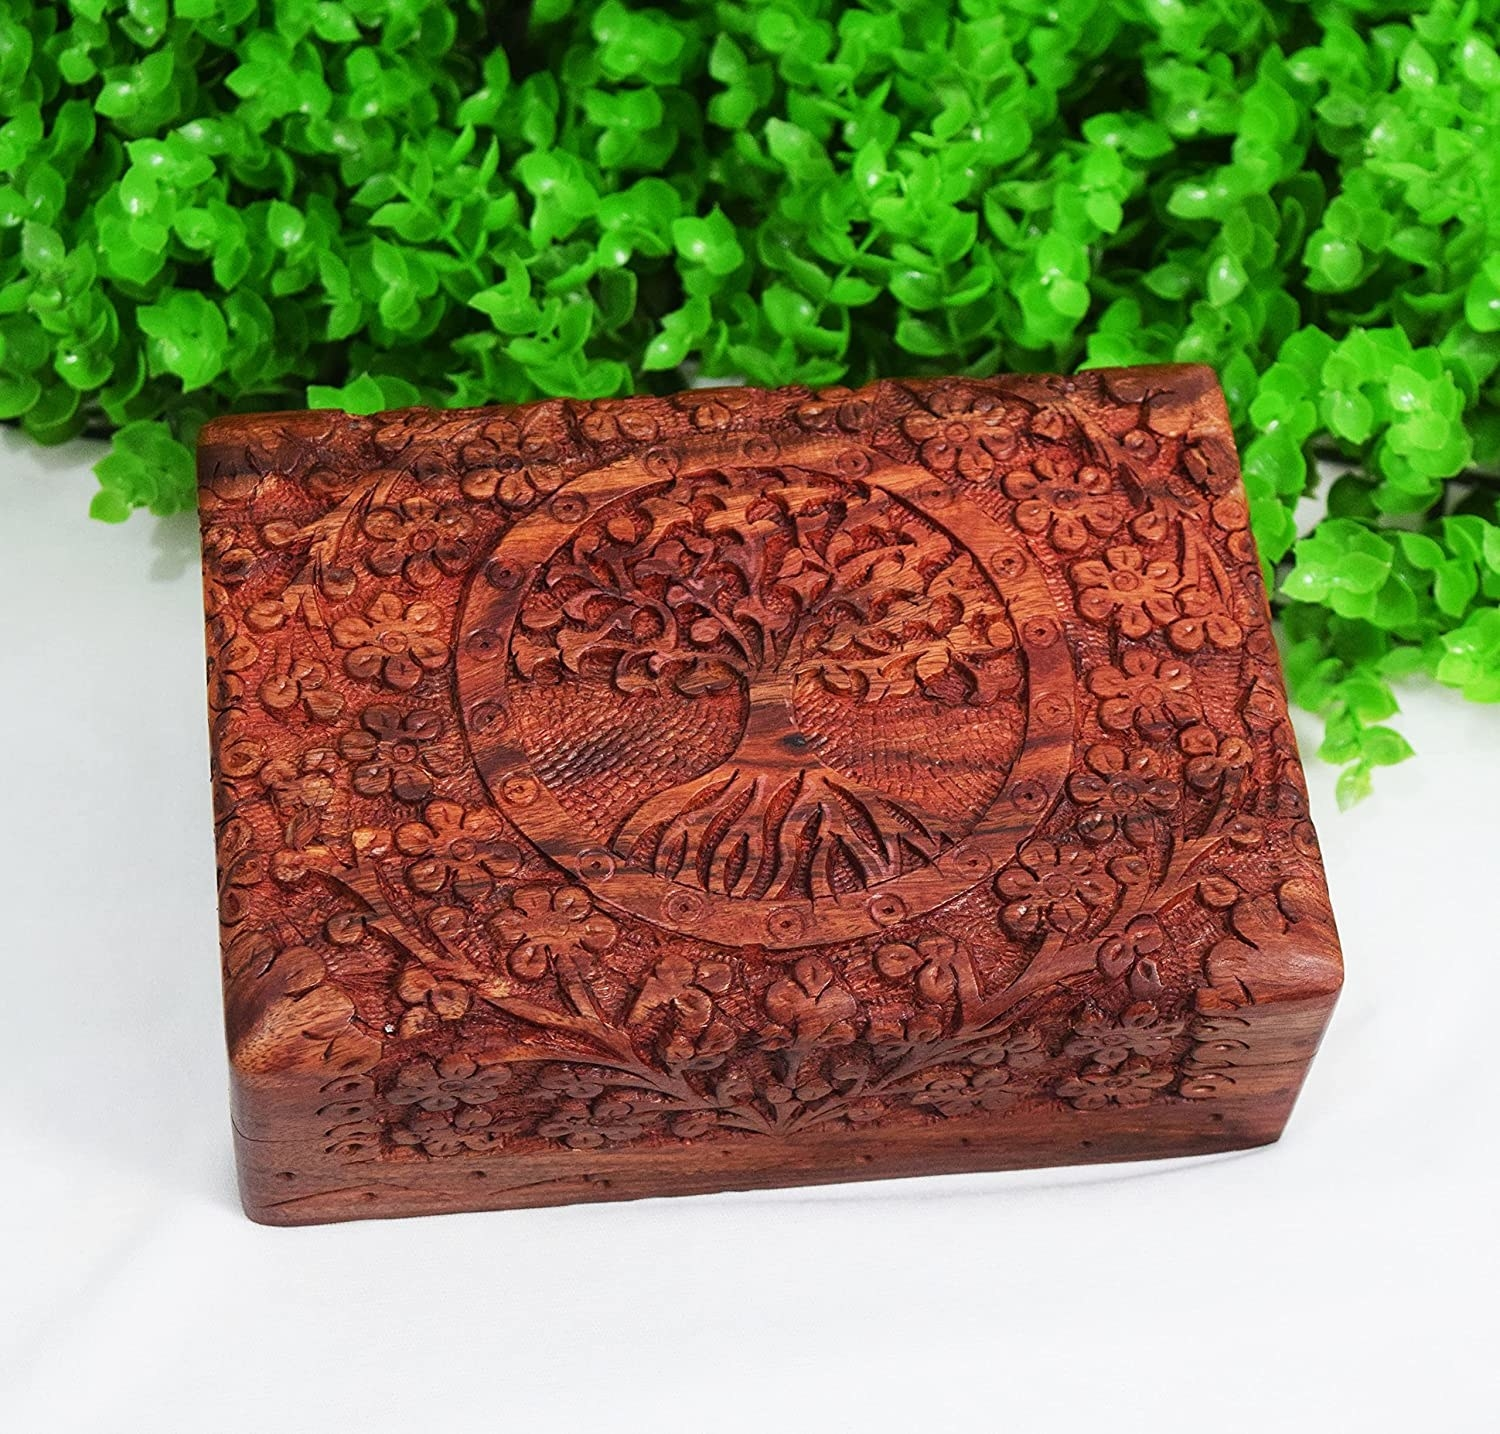 A wooden carved jewellery box with detailed carvings on the body